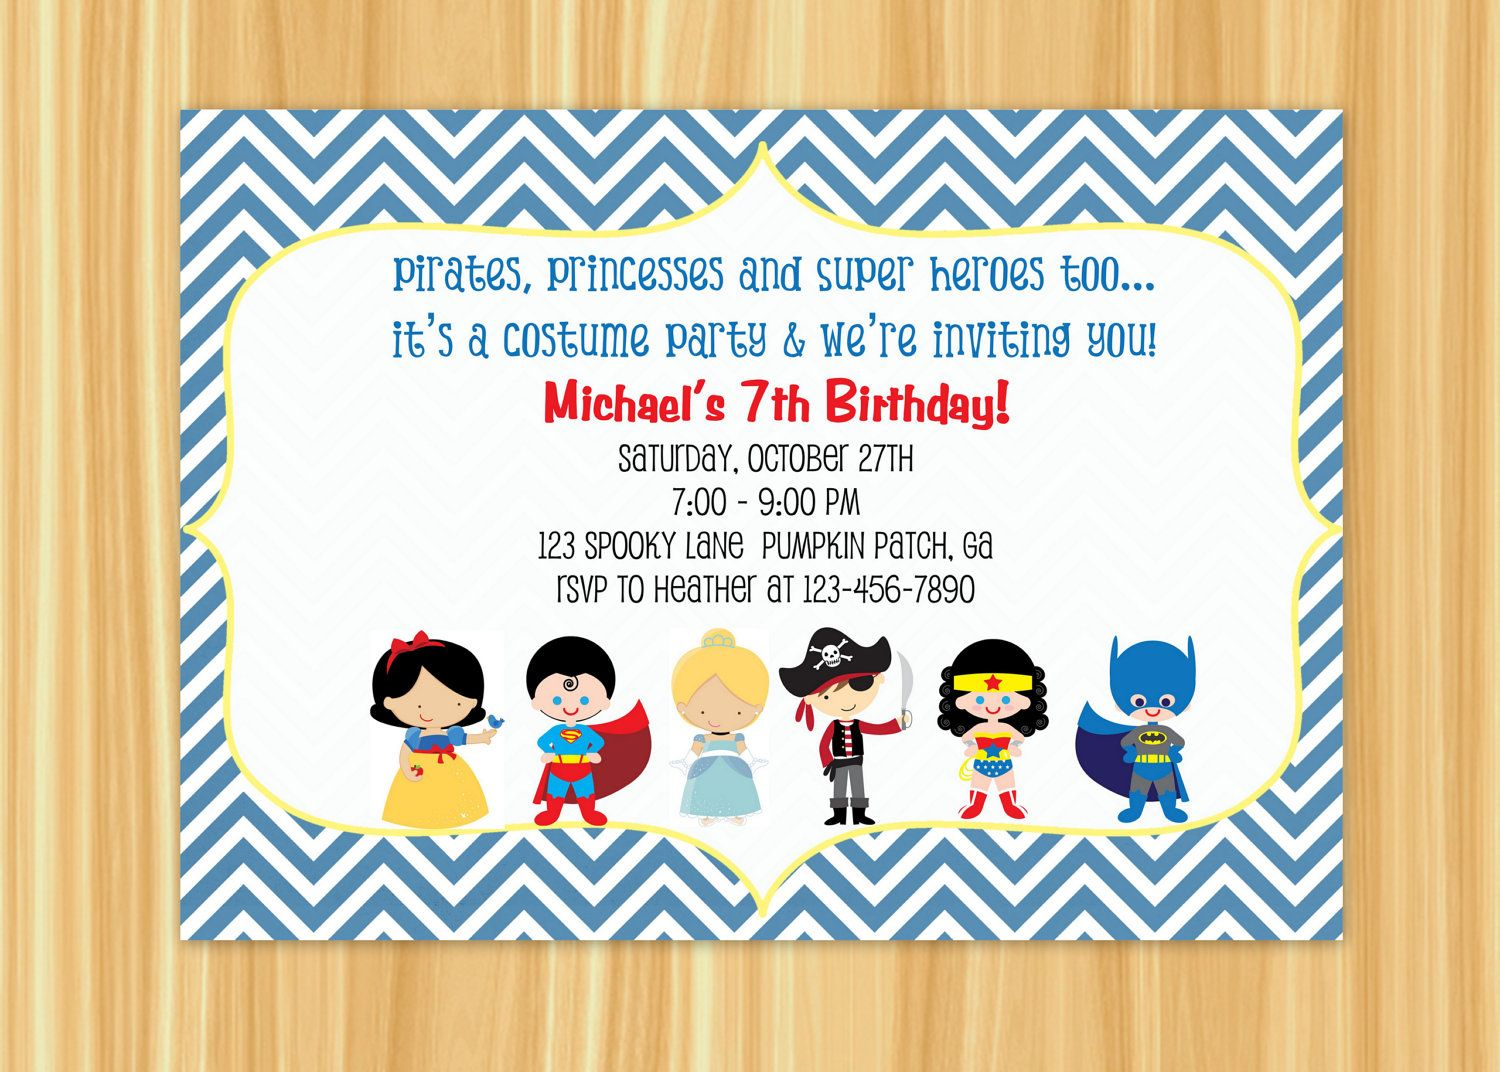 custom printable kids costume party birthday invitation via etsy